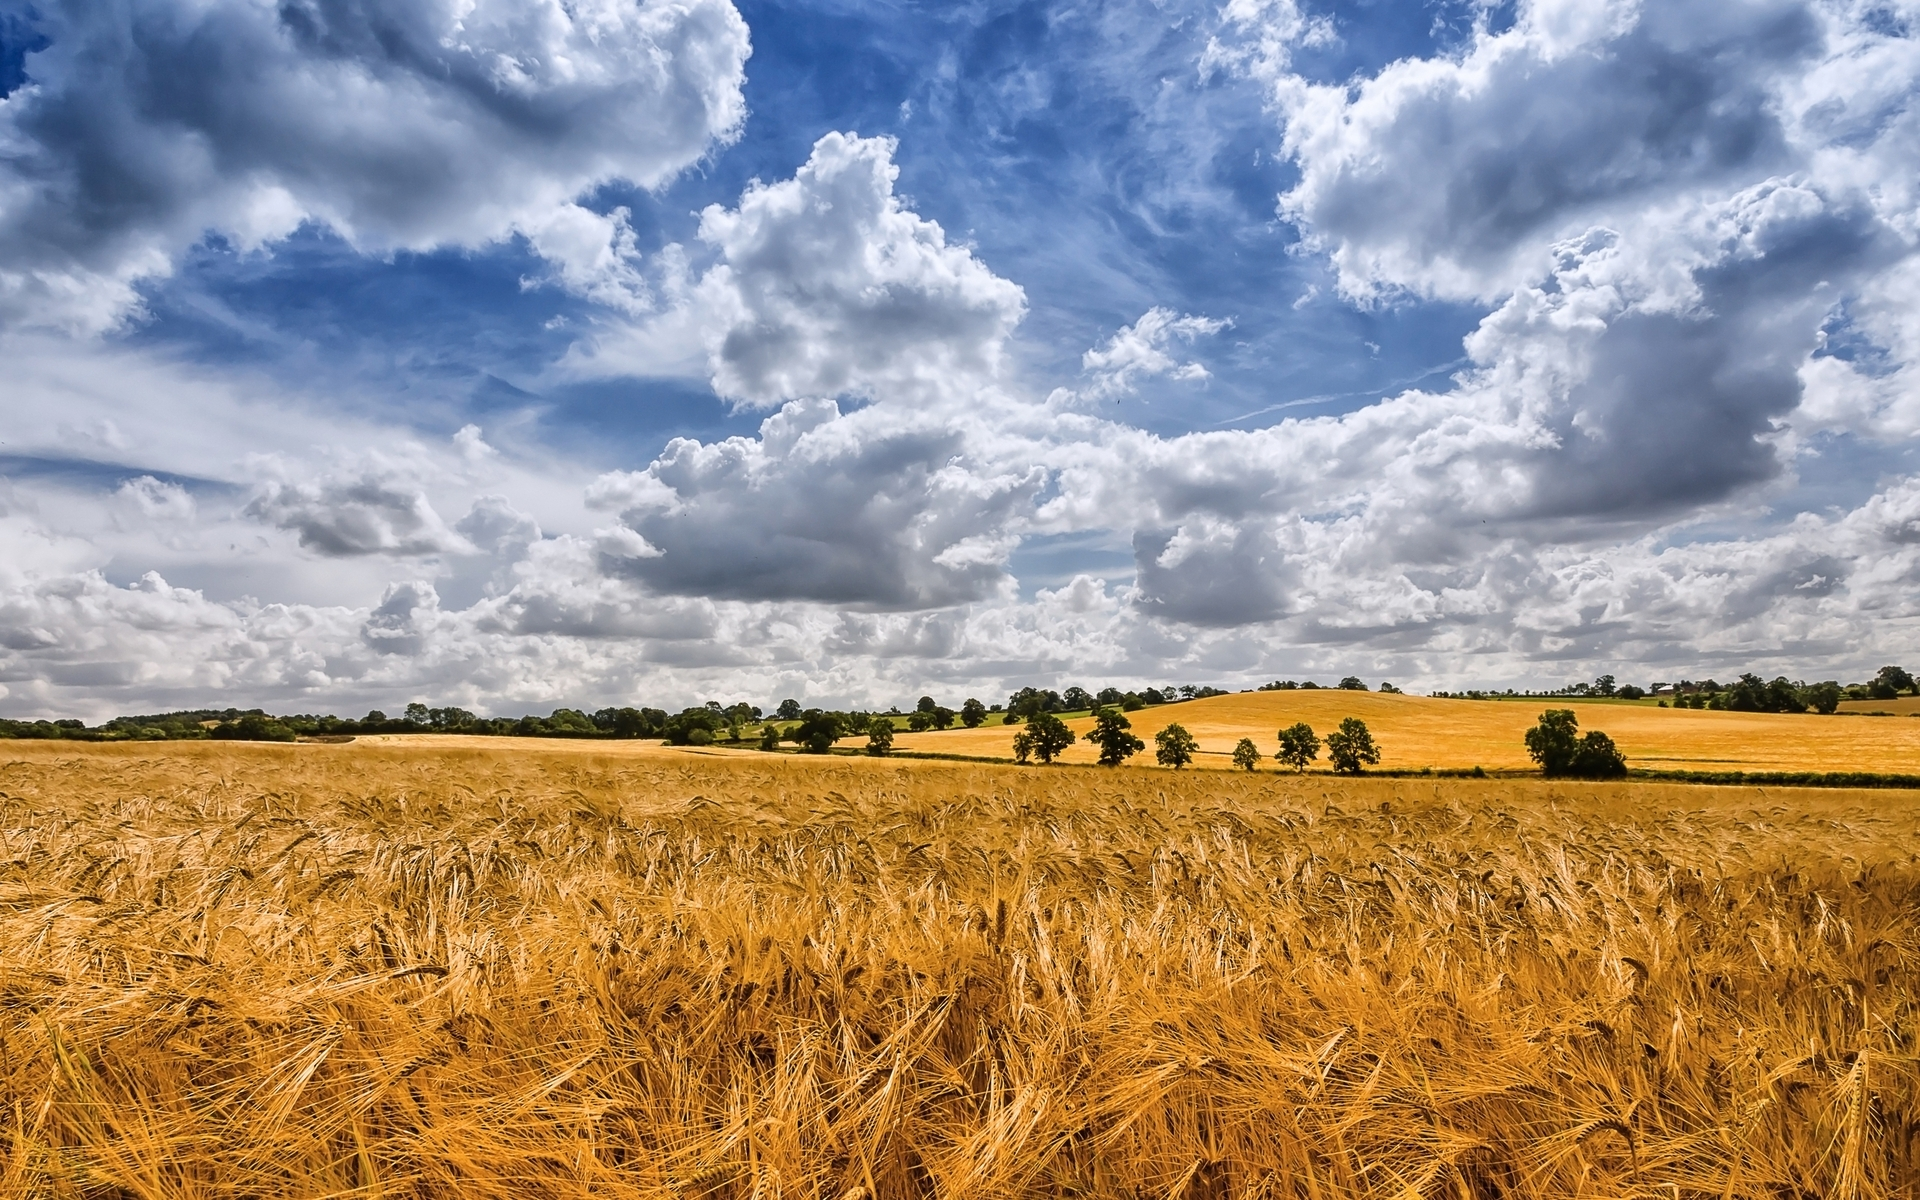 Pretty Fall Desktop Wallpaper Golden Wheat Field Cloudy Sky Wallpapers Golden Wheat